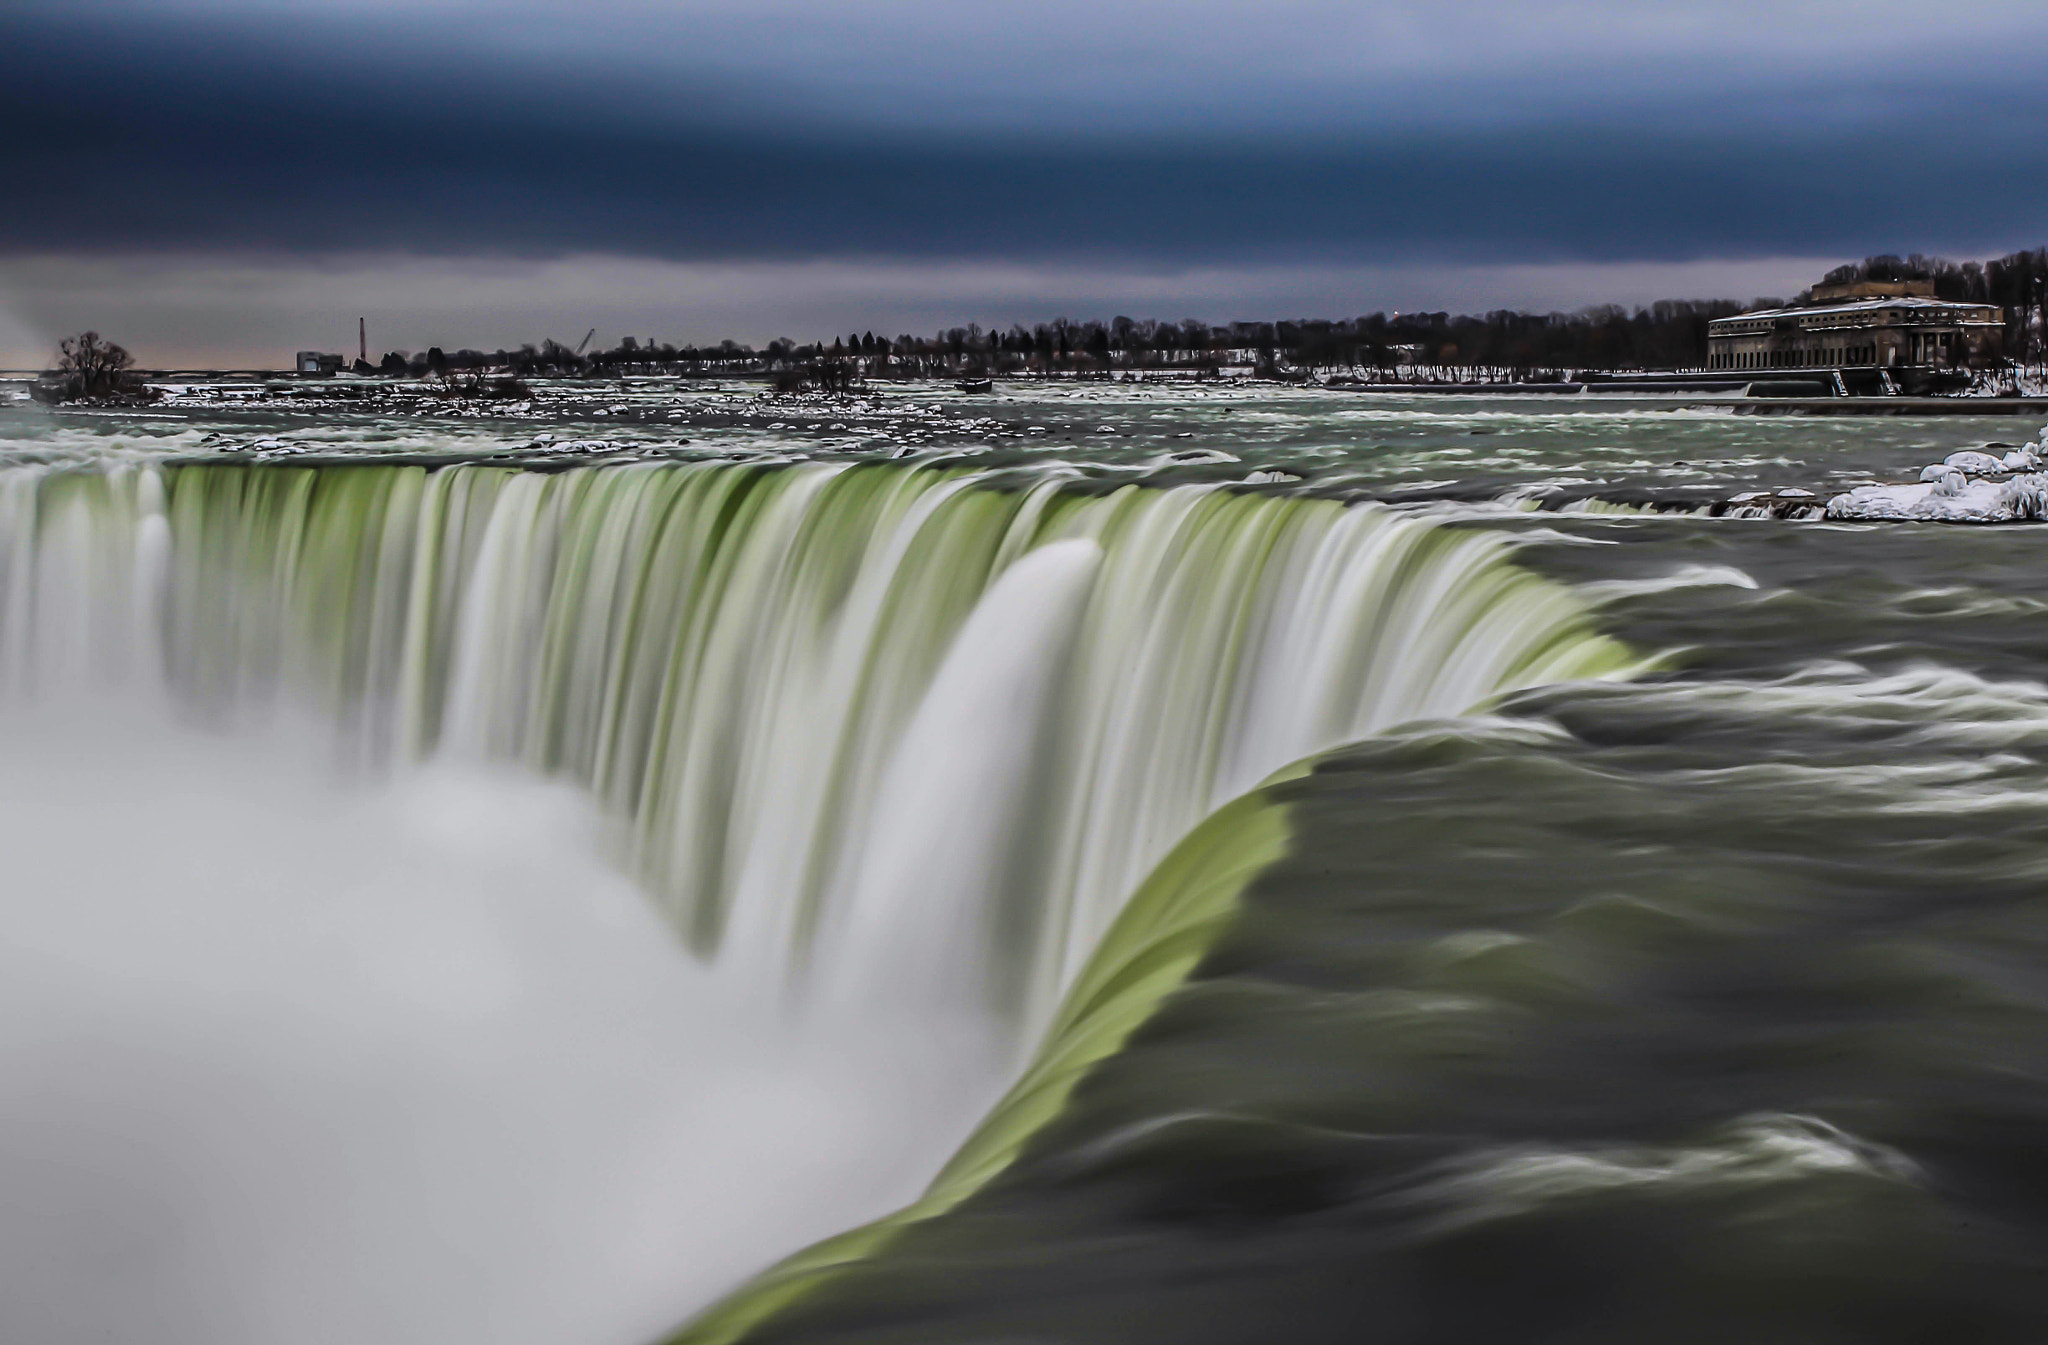 Photograph Niagara Falls by Giamma Broilo on 500px